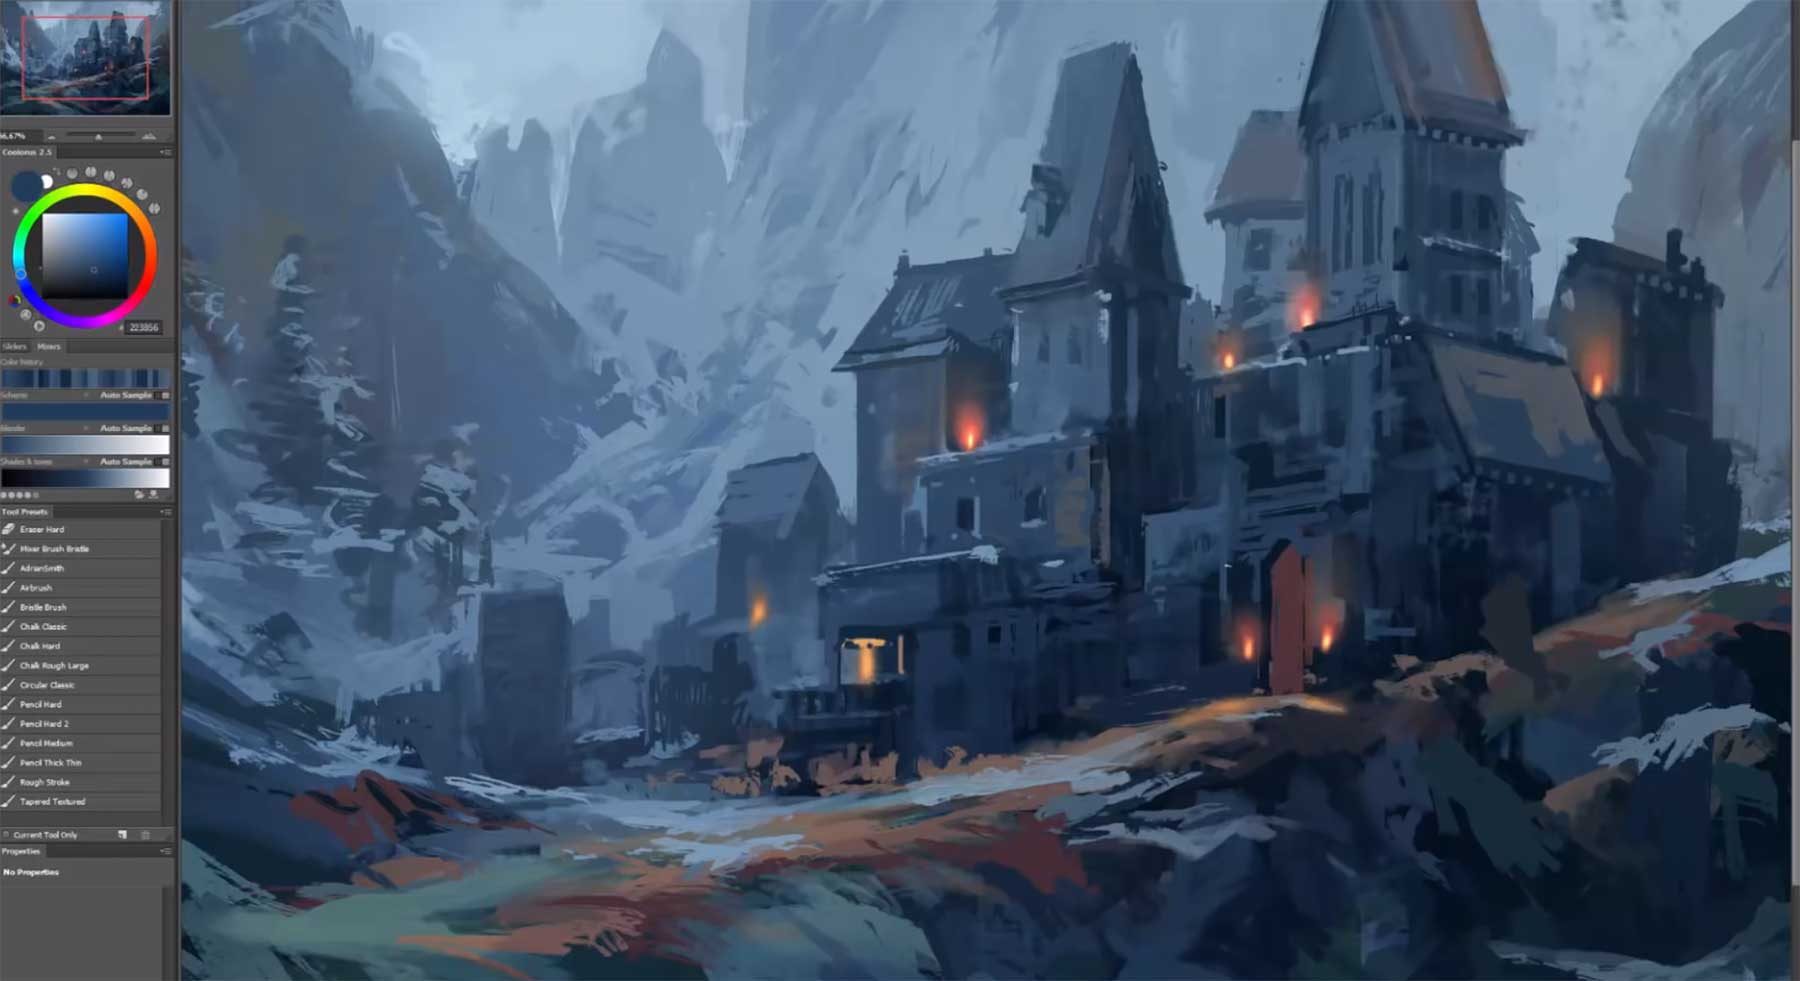 Andreas Rocha malt ein Fantasy-Schloss fantasy-schloss-digital-painting-making-of